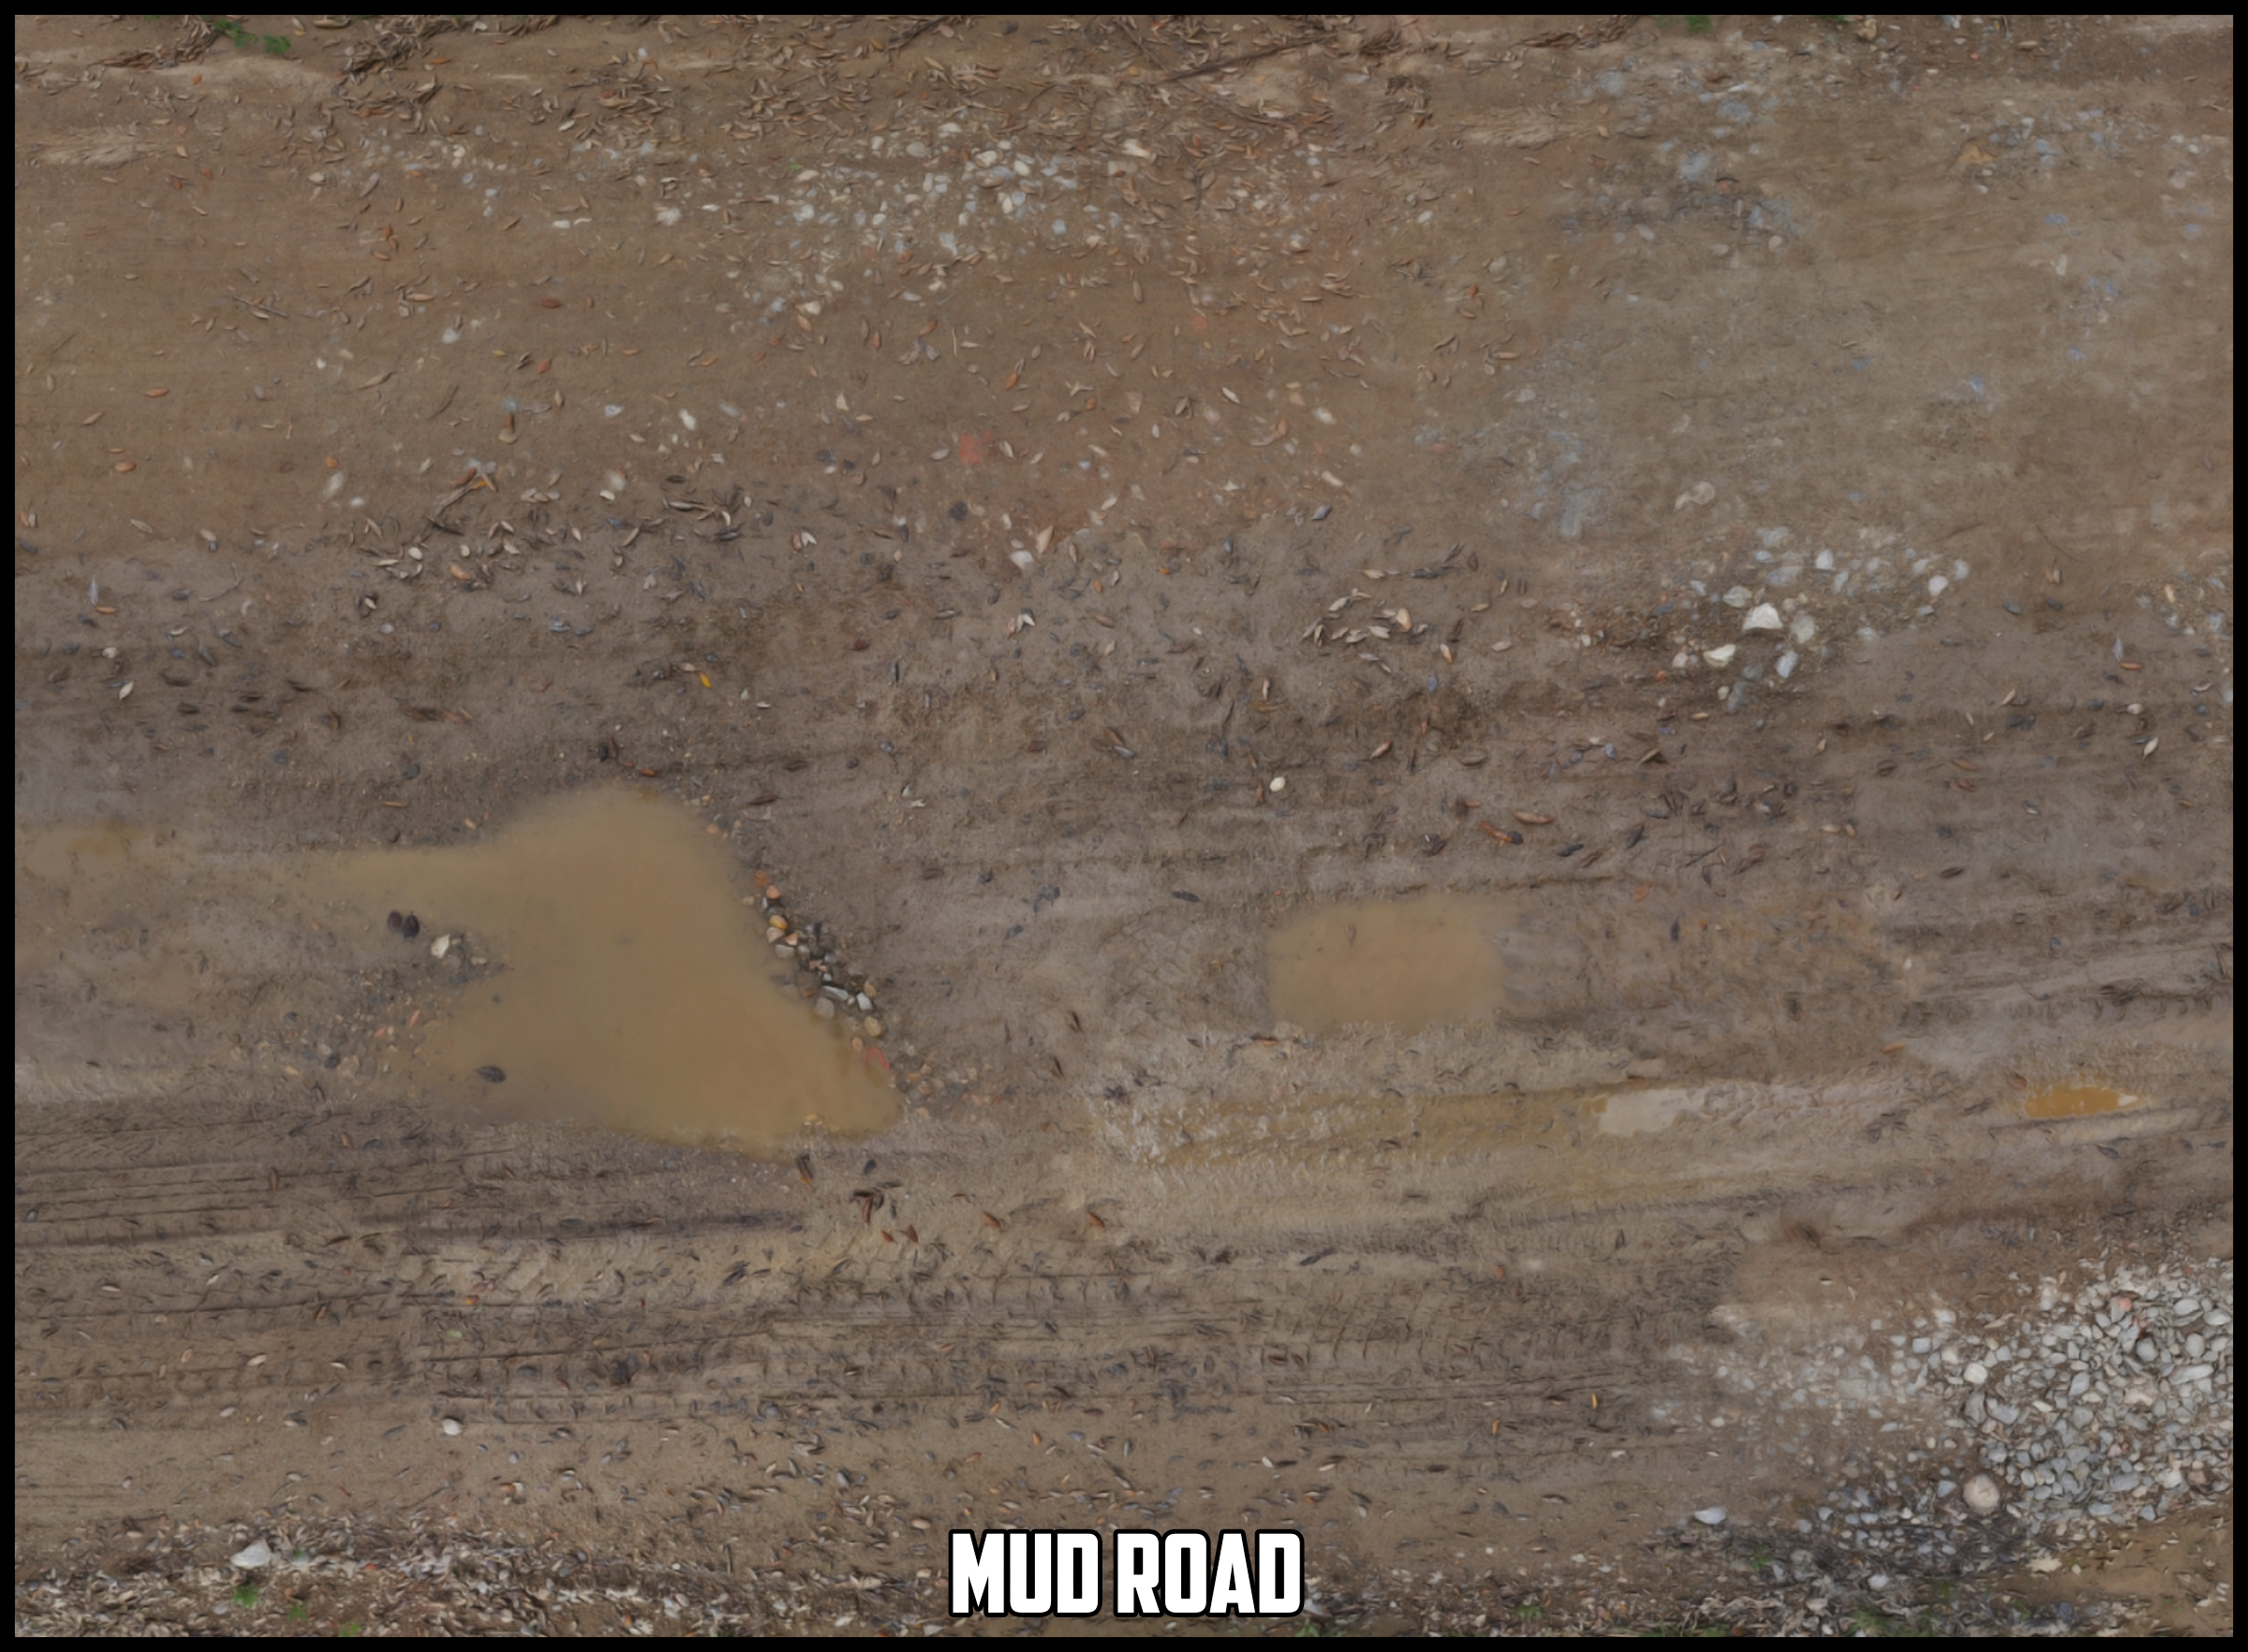 texture-mud-road-example.png